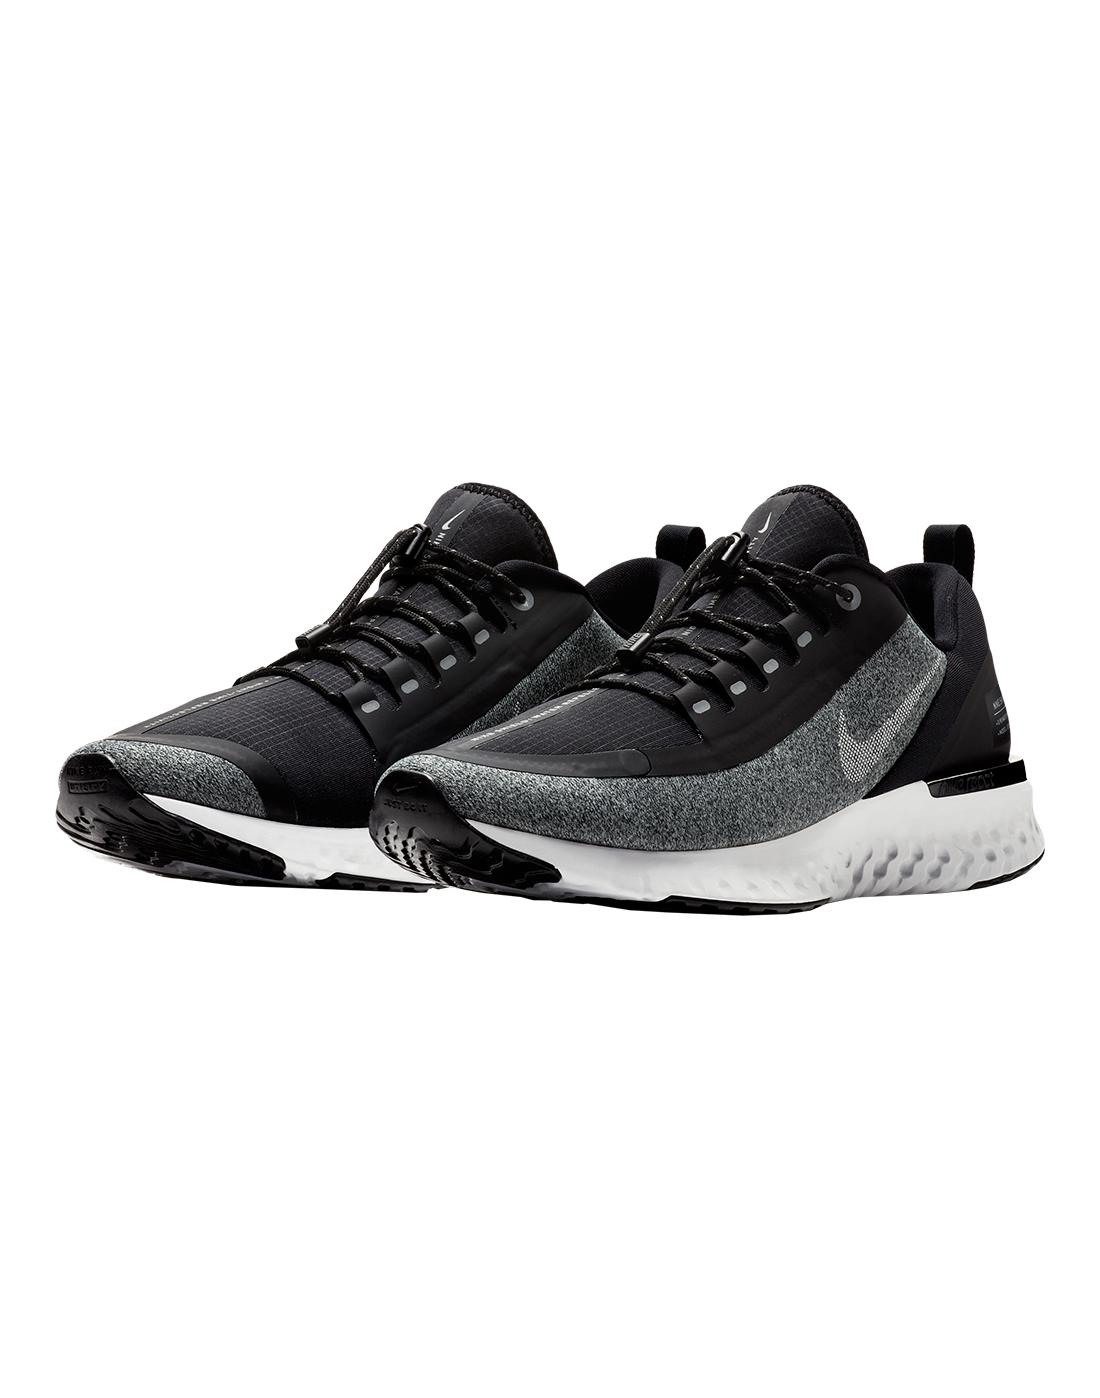 41f5a5360b807 Men s Black Nike Odyssey React Shield